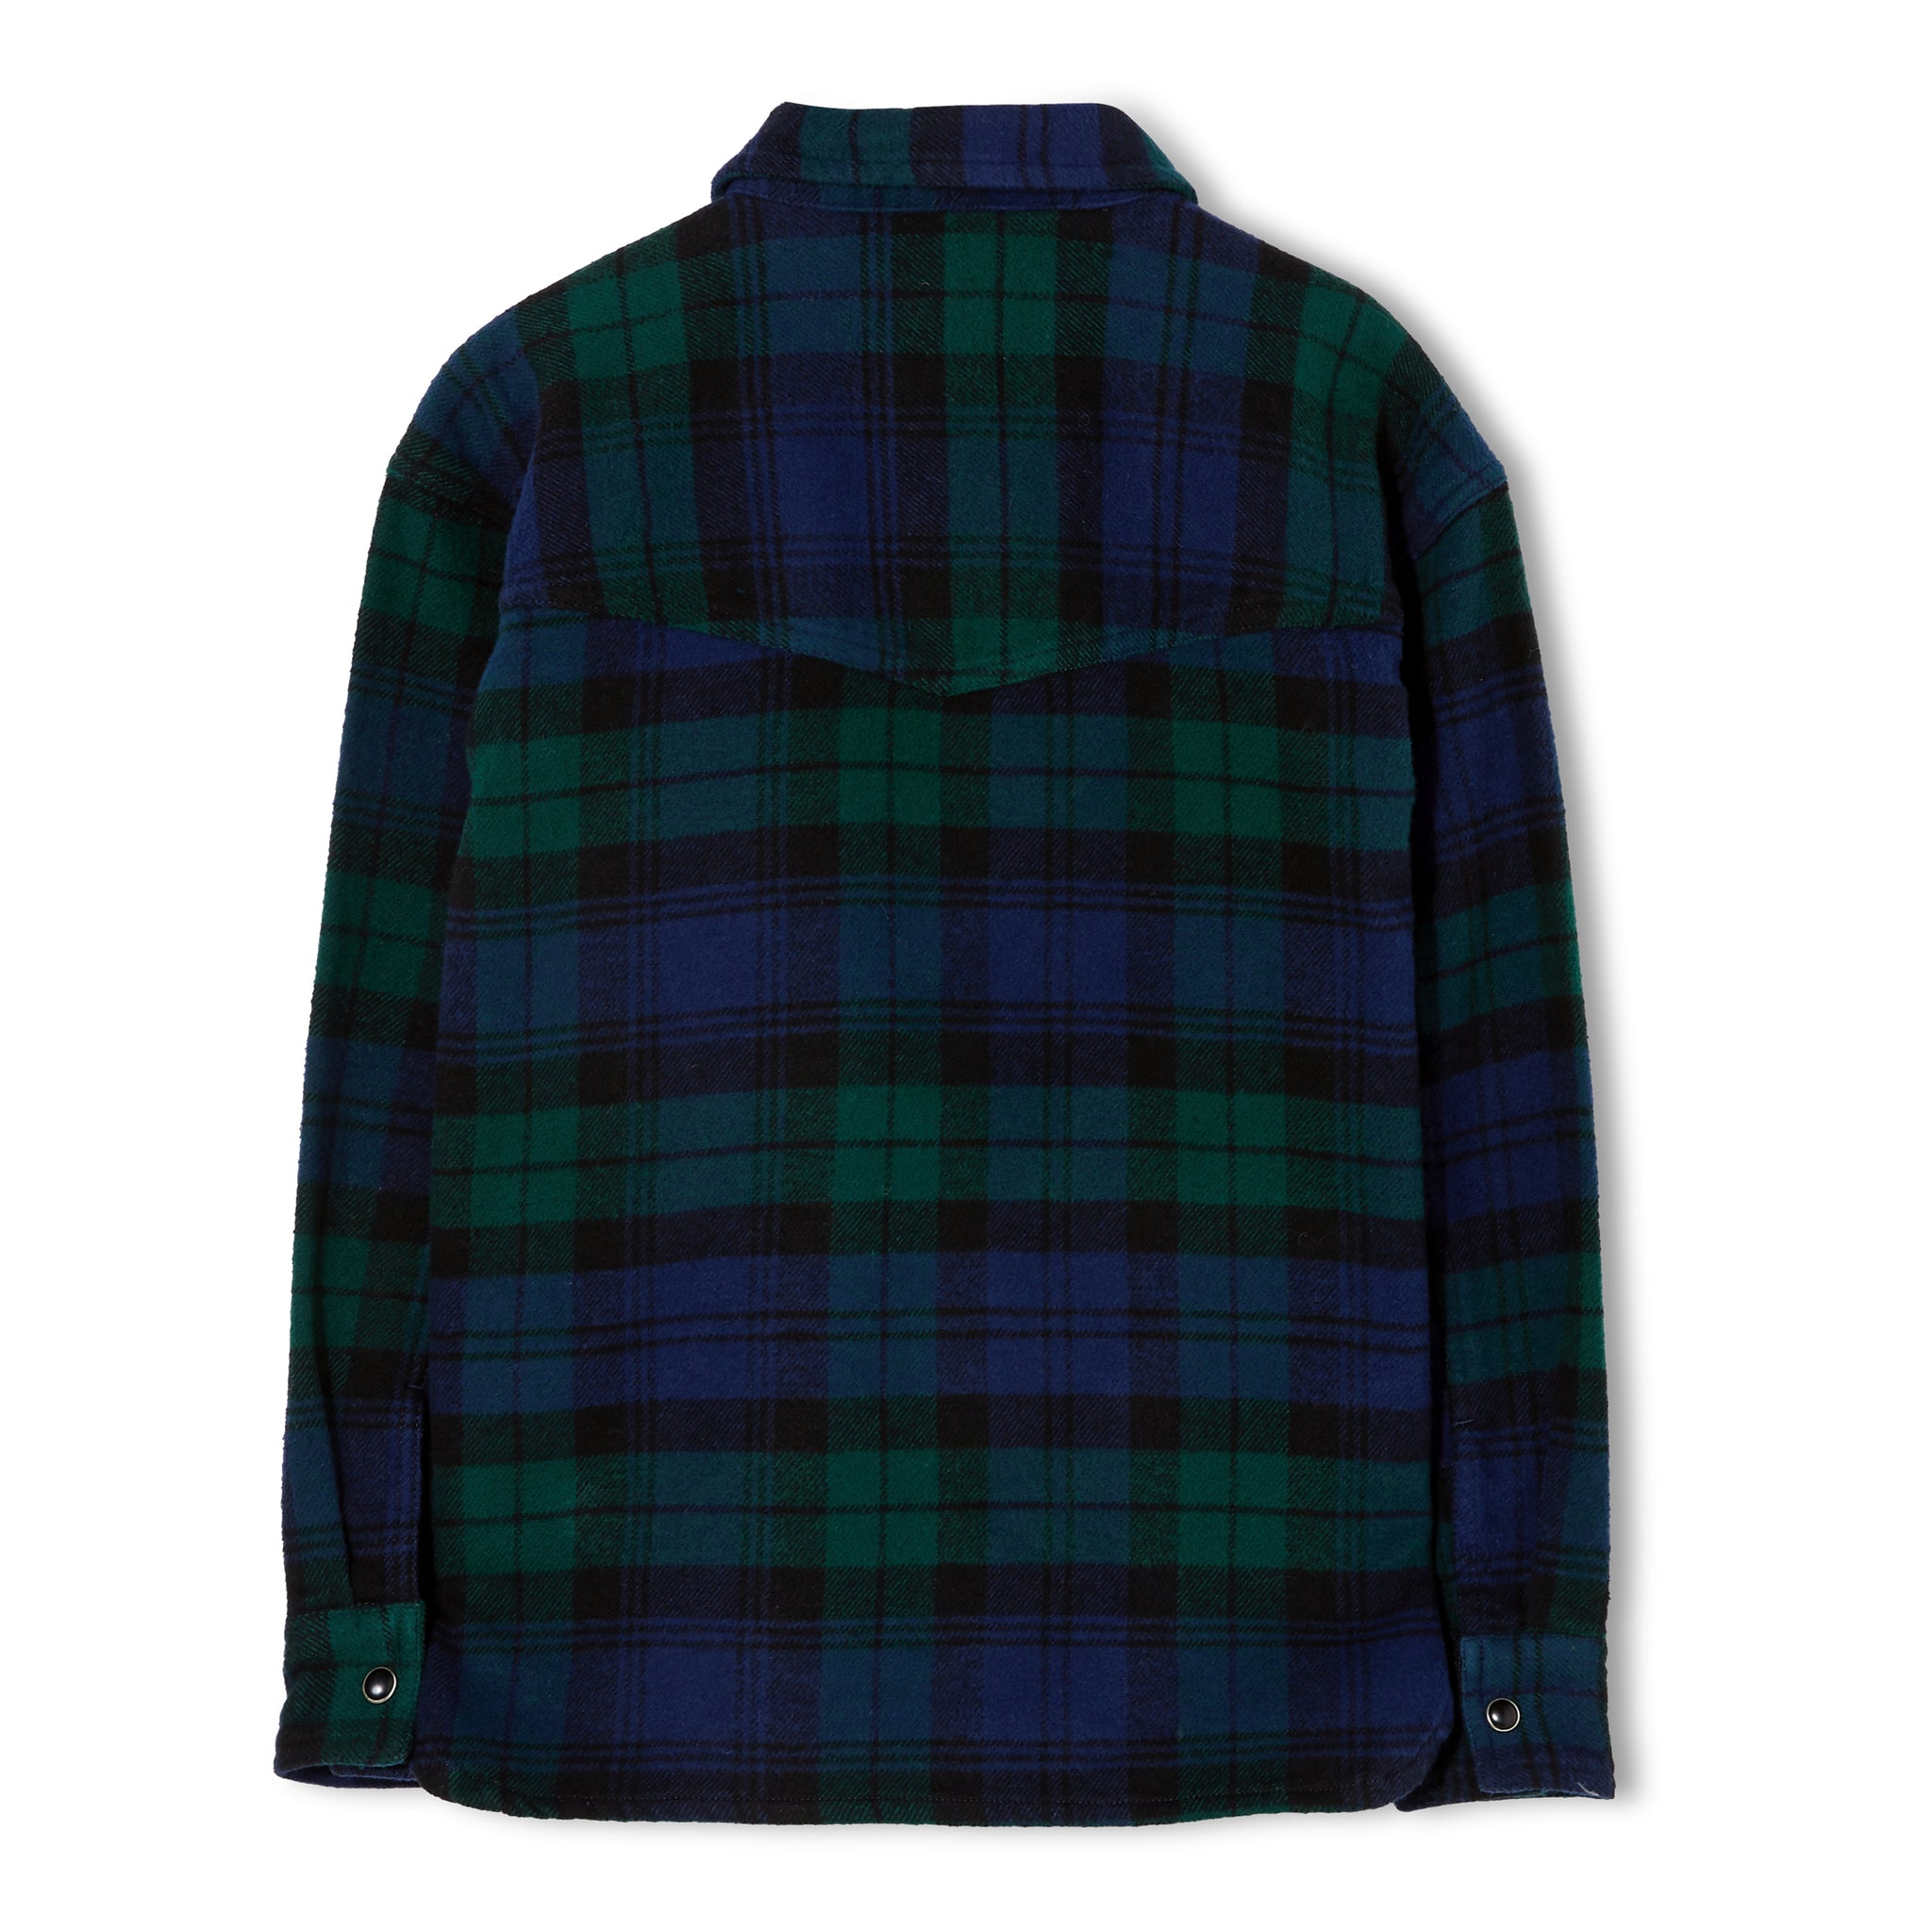 NEW DUSK Navy Checks - Long Sleeve Shirt 2